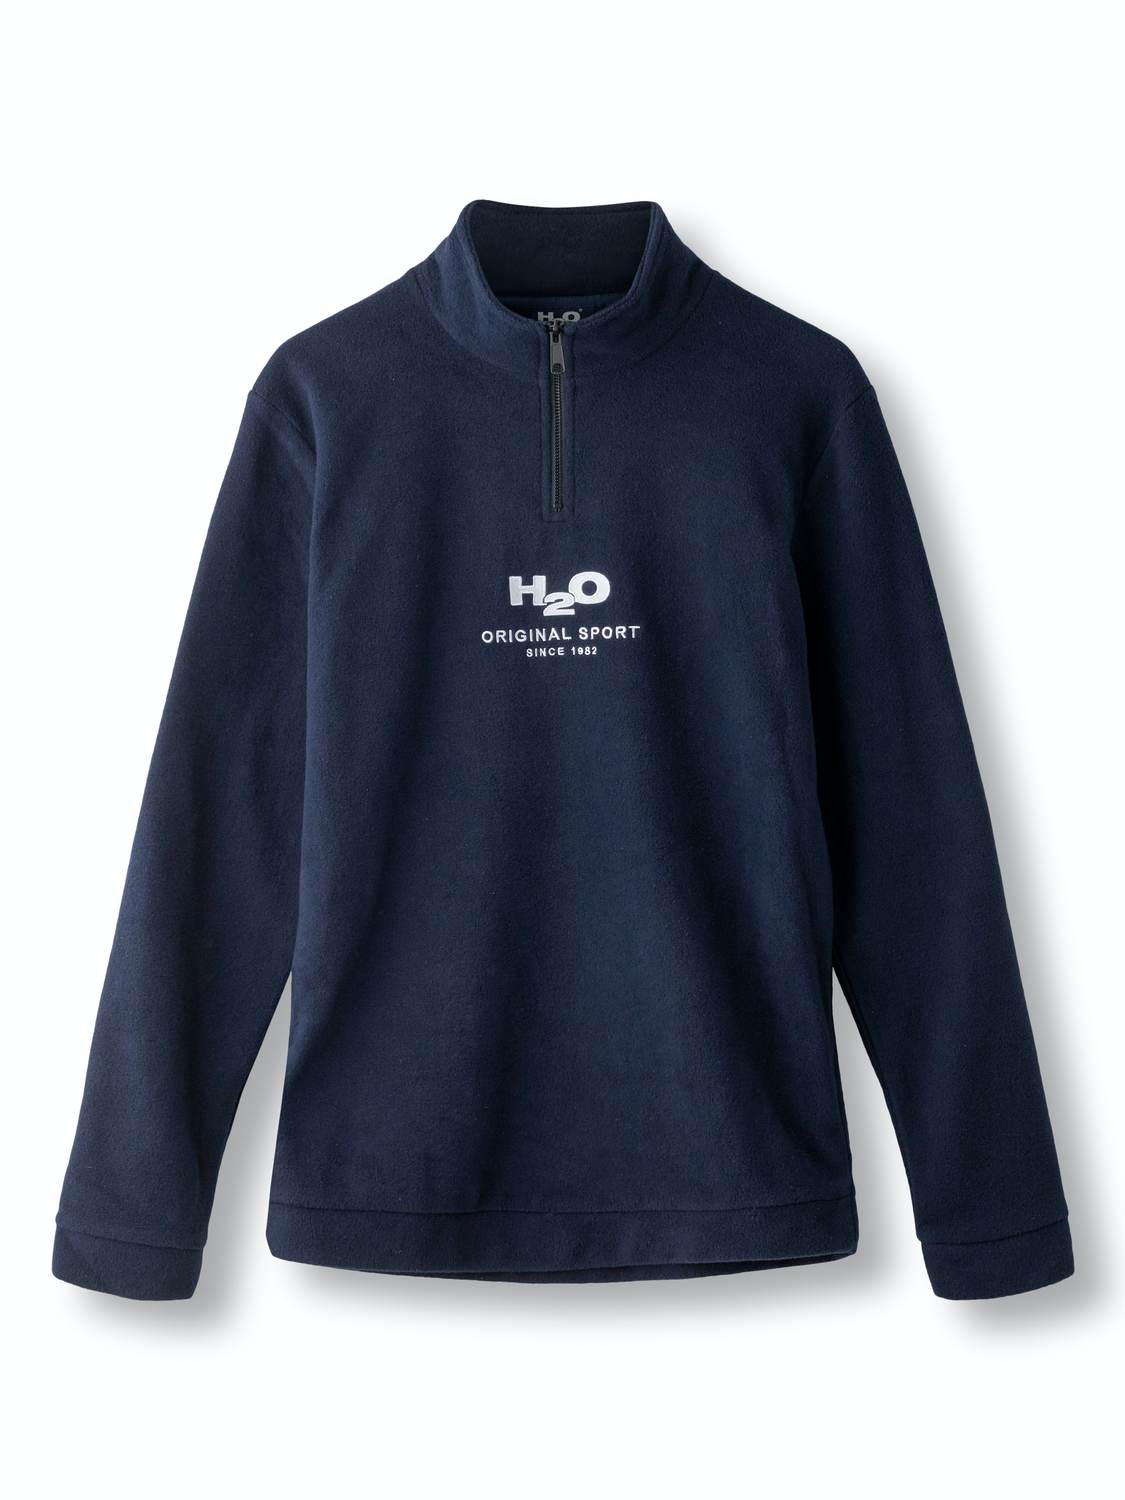 H2O Blåvand Fleece Half Zip Navy | GATE 36 Hobro